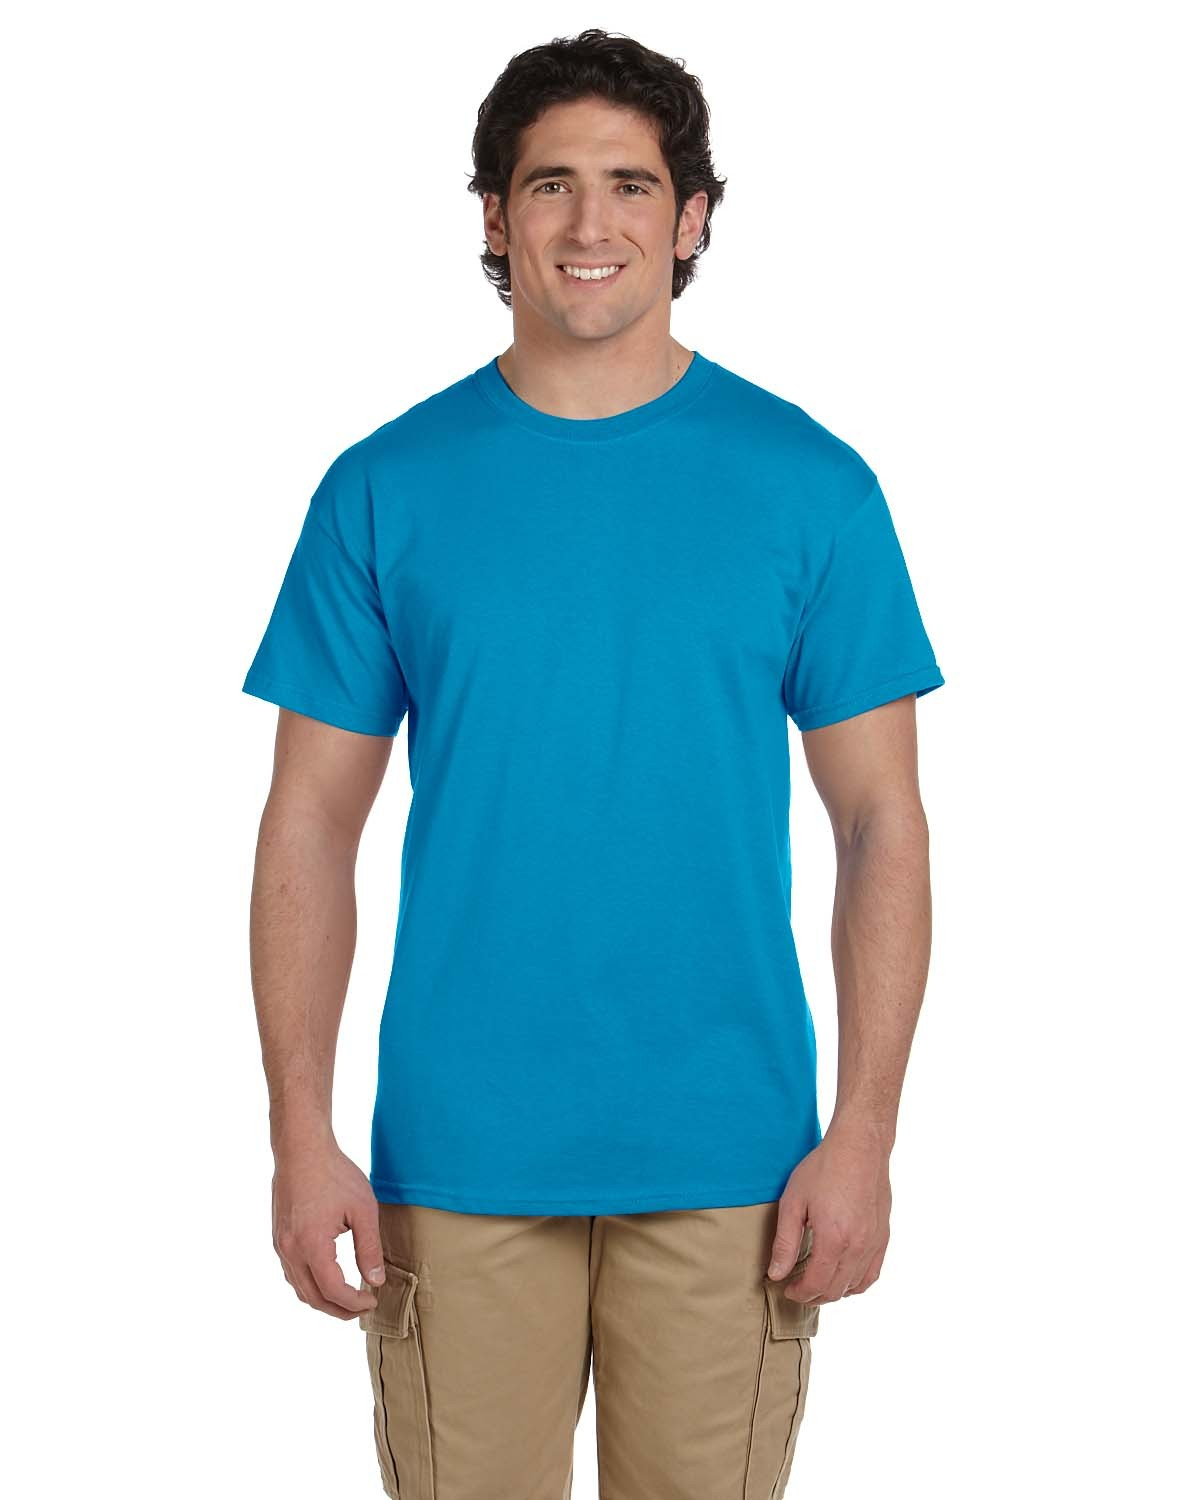 3931 Fruit of the Loom PACIFIC BLUE